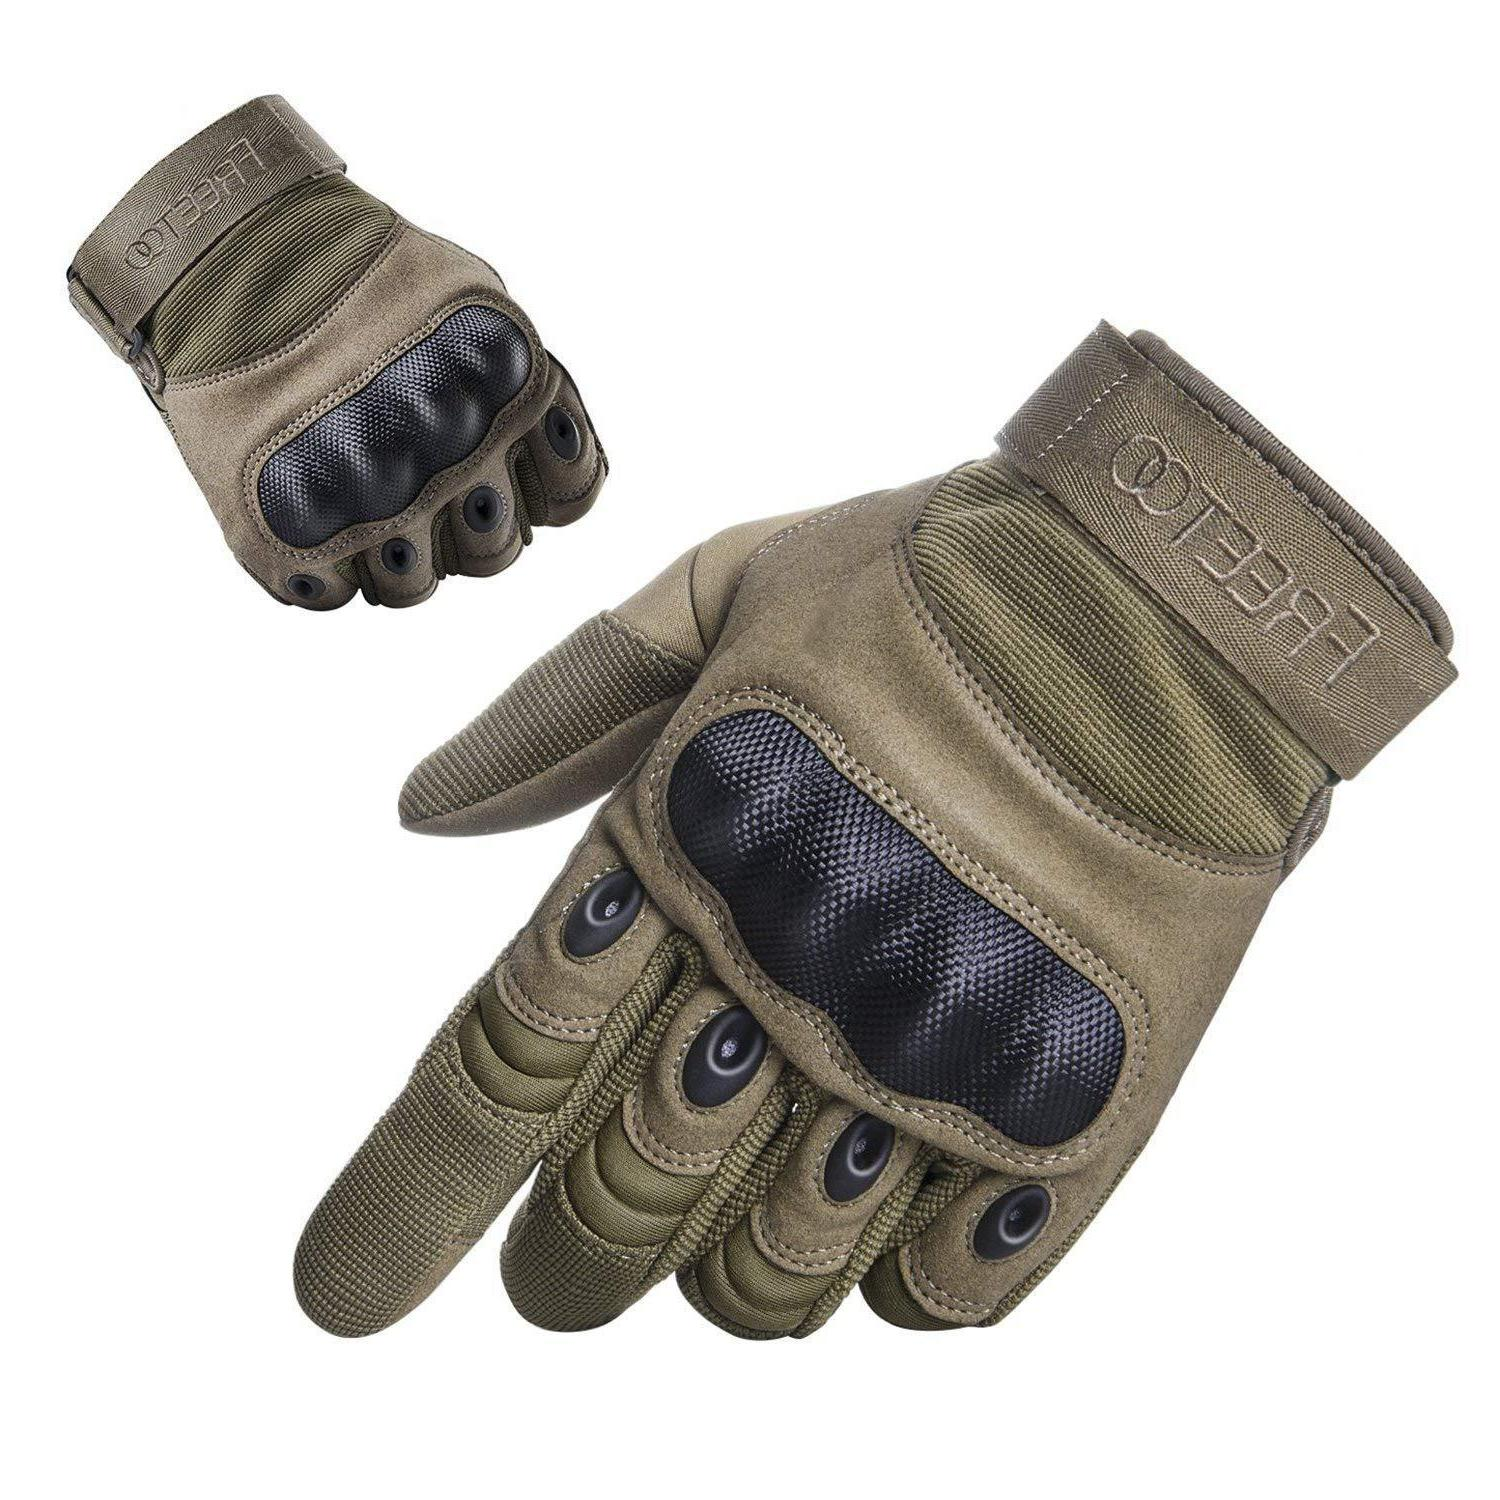 FREETOO Tactical Military Rubber Hard Knuckle Gloves